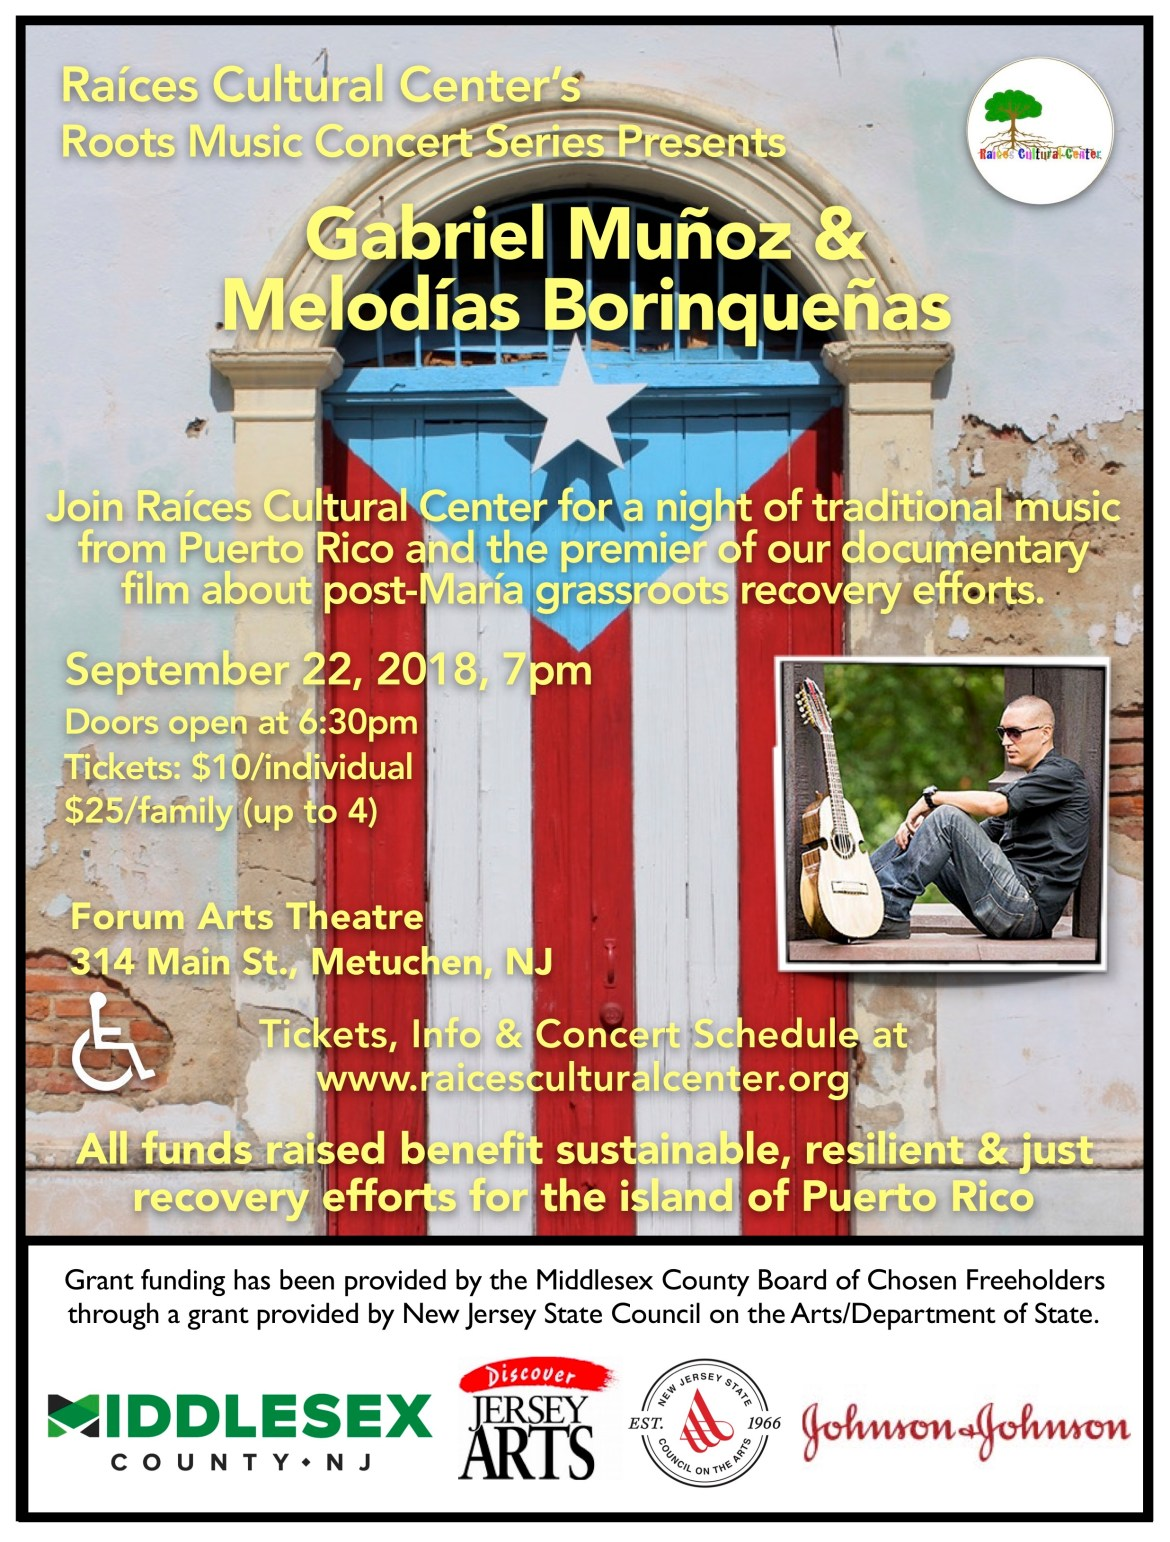 flyer for the next concert in the Raíces Roots Music Concert Series presenting Gabriel Muñoz & Melodías Borinqueñas